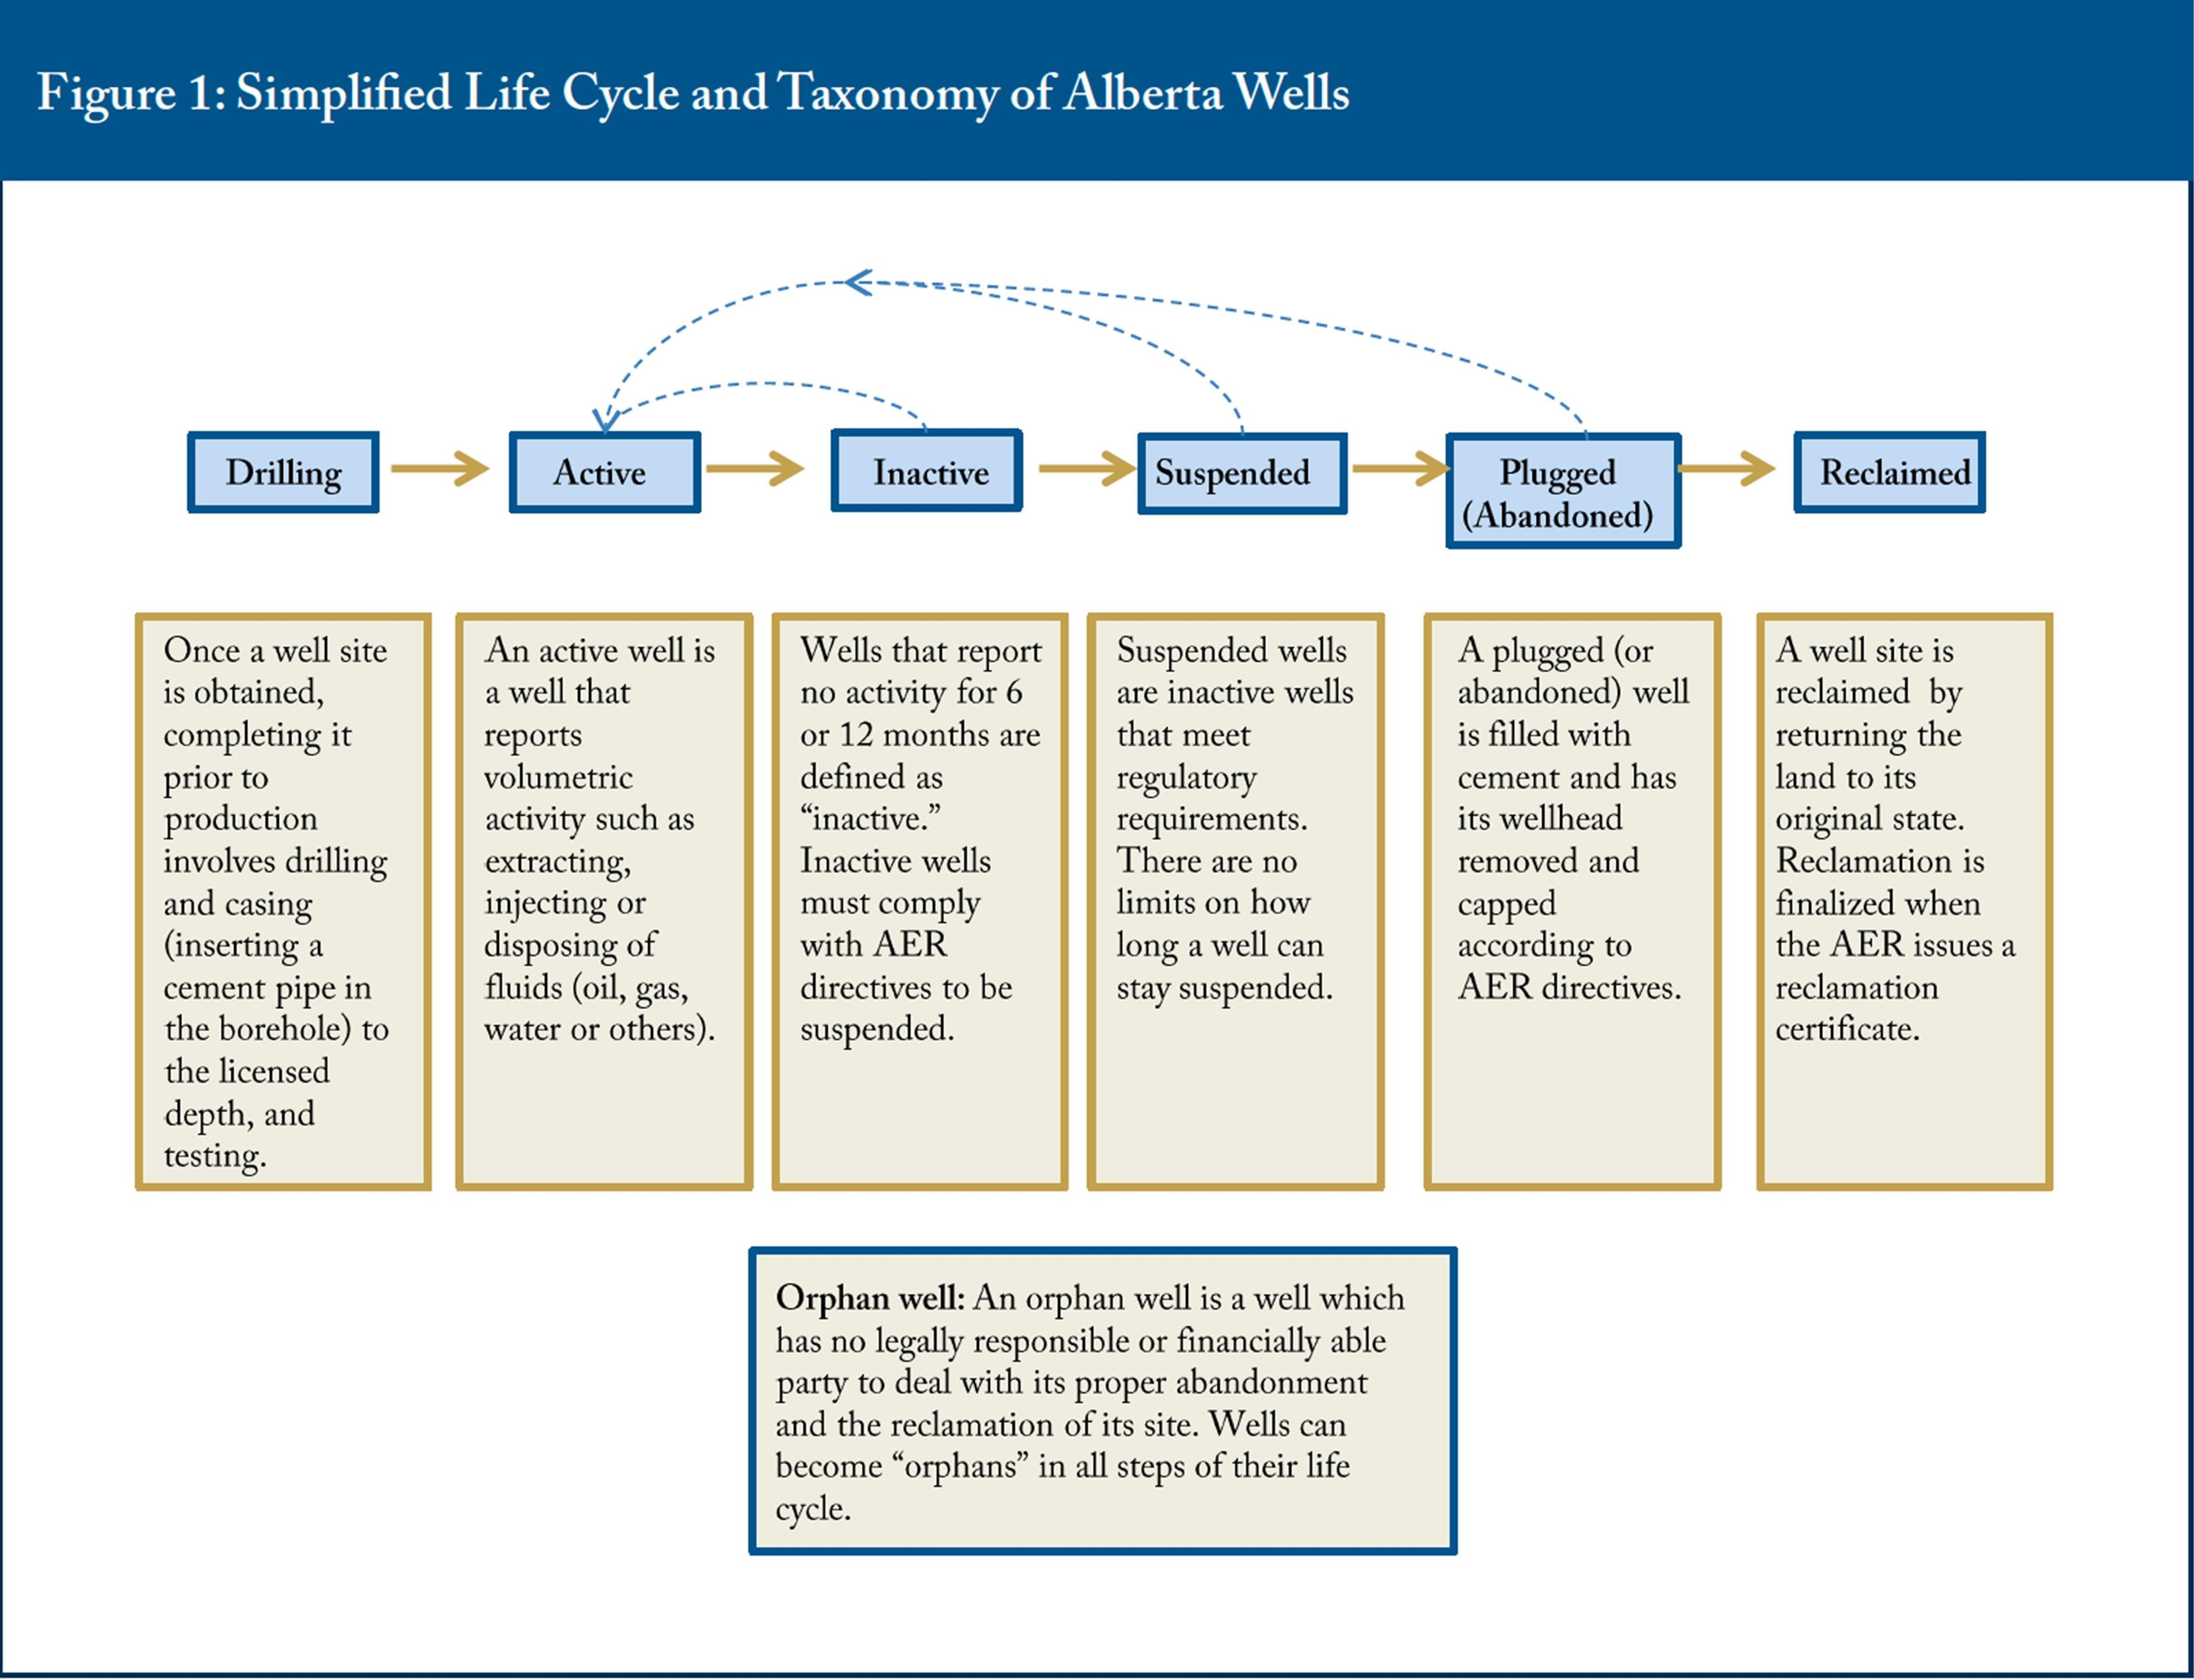 Figure 1: Simplified Life Cycle and Taxonomy of Alberta Wells